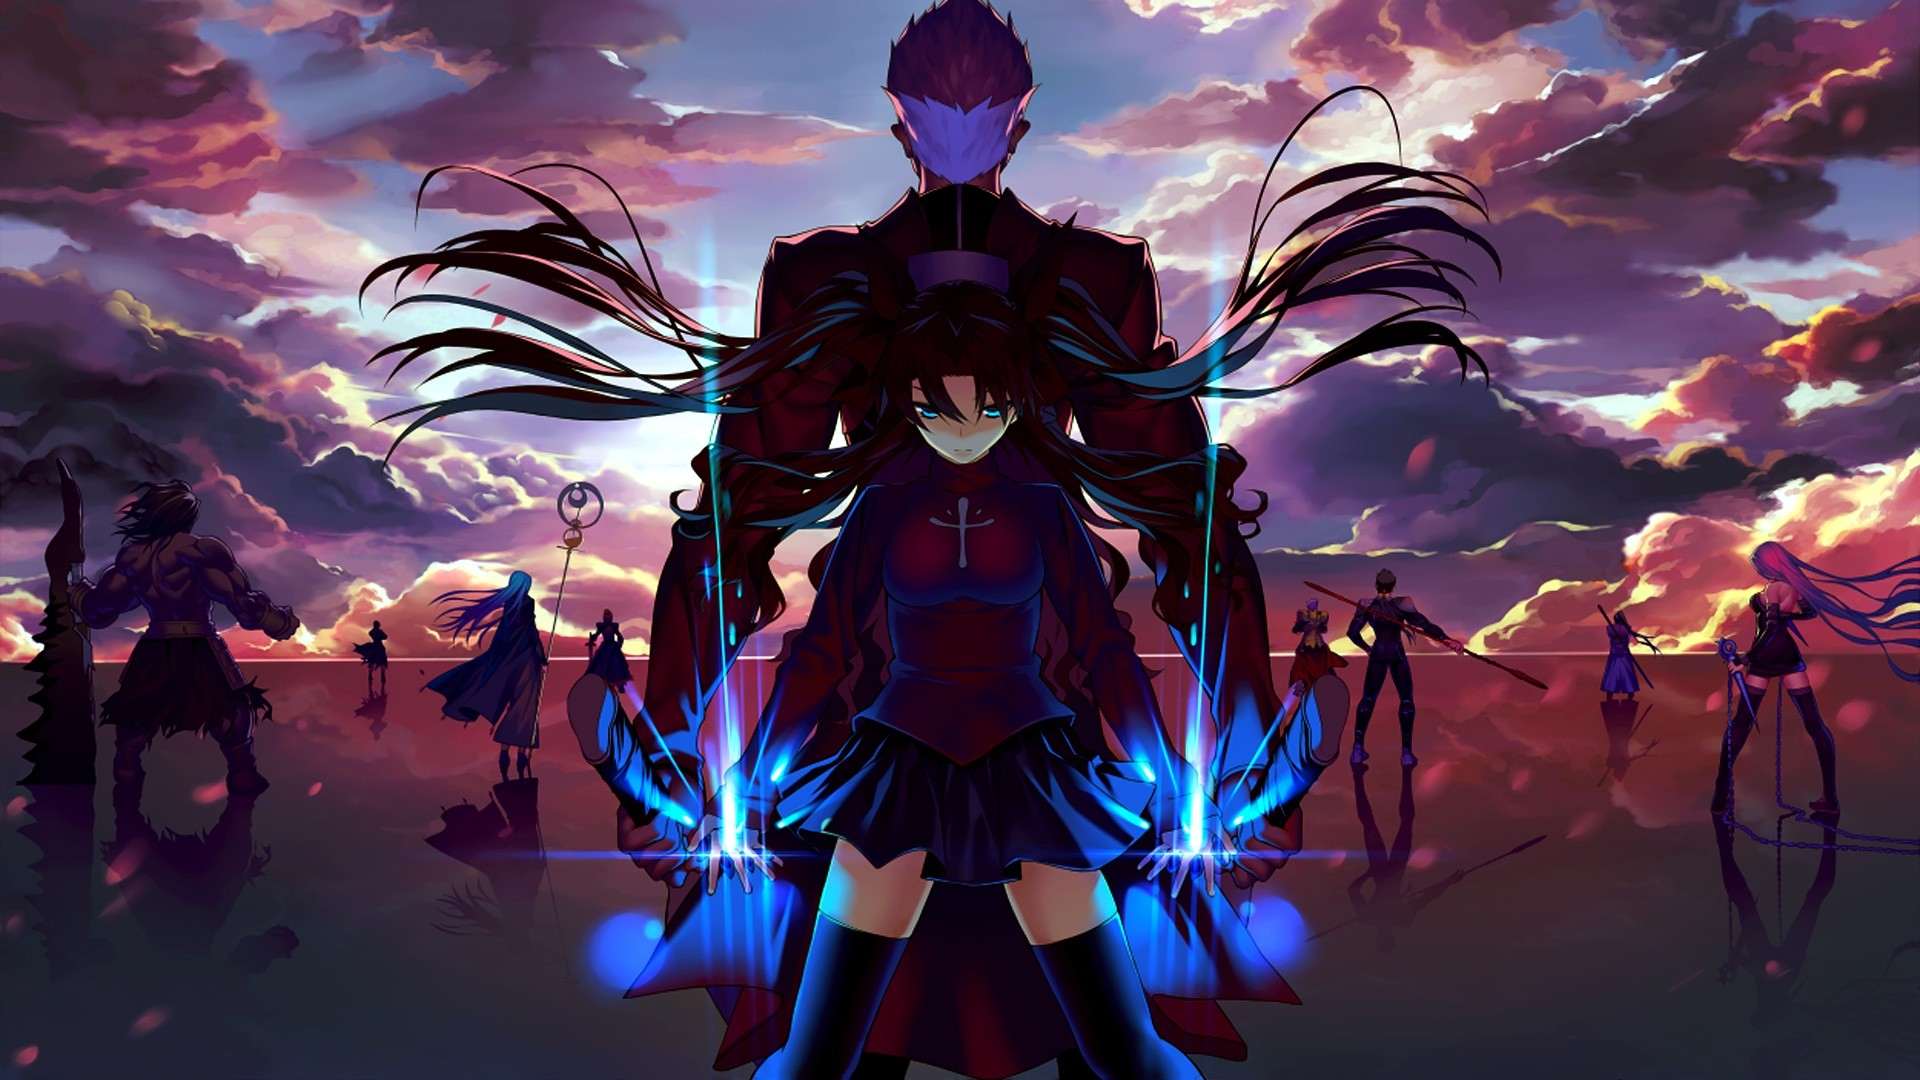 Fate Stay Night Lancer Anime Wallpaper